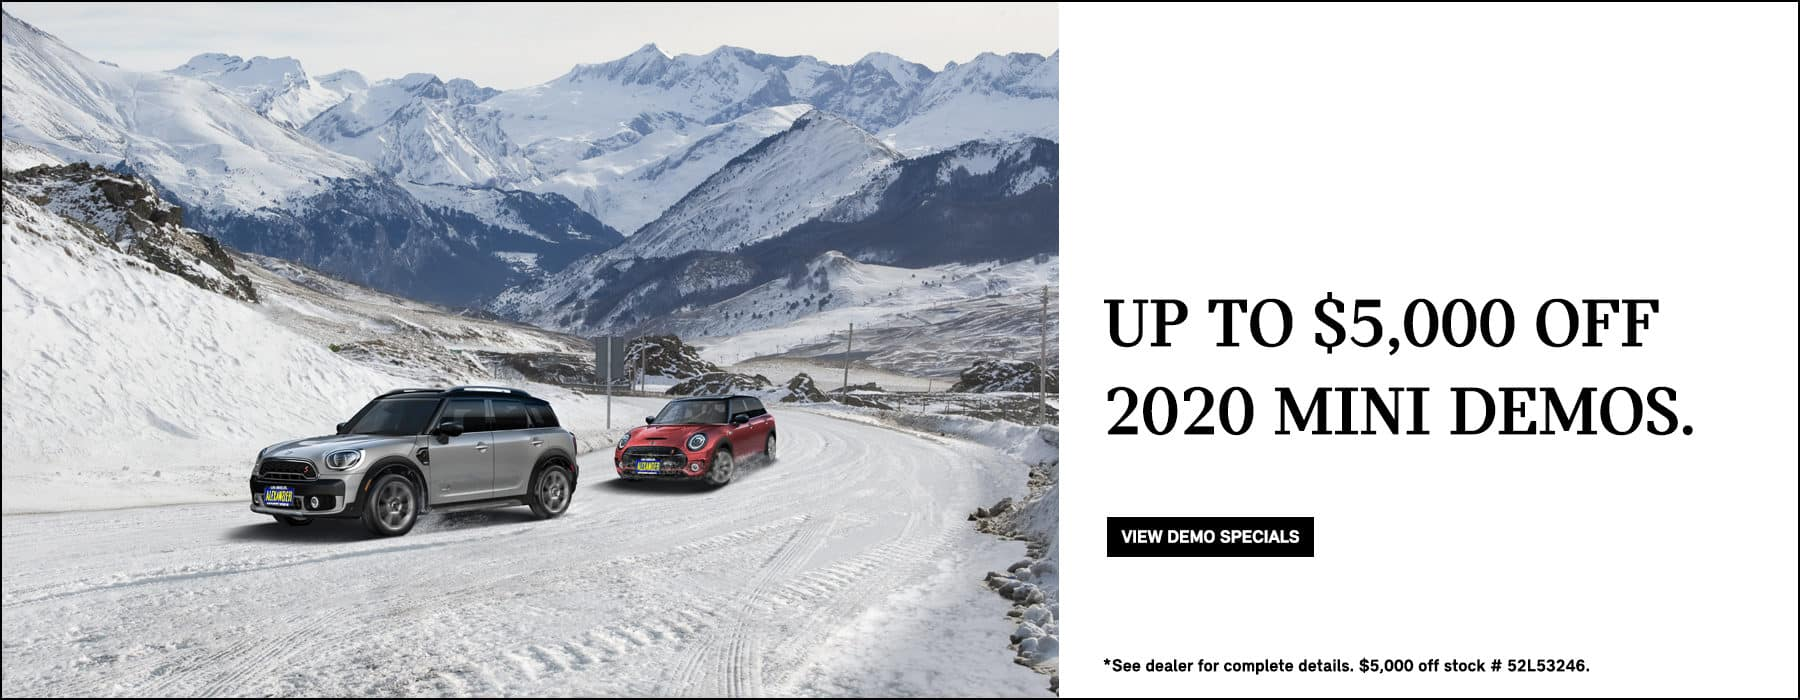 Up to $5,000 off 2020 MINI demos. View Demo Specials. See dealer for complete details. $5,000 off stock # 52L53246.